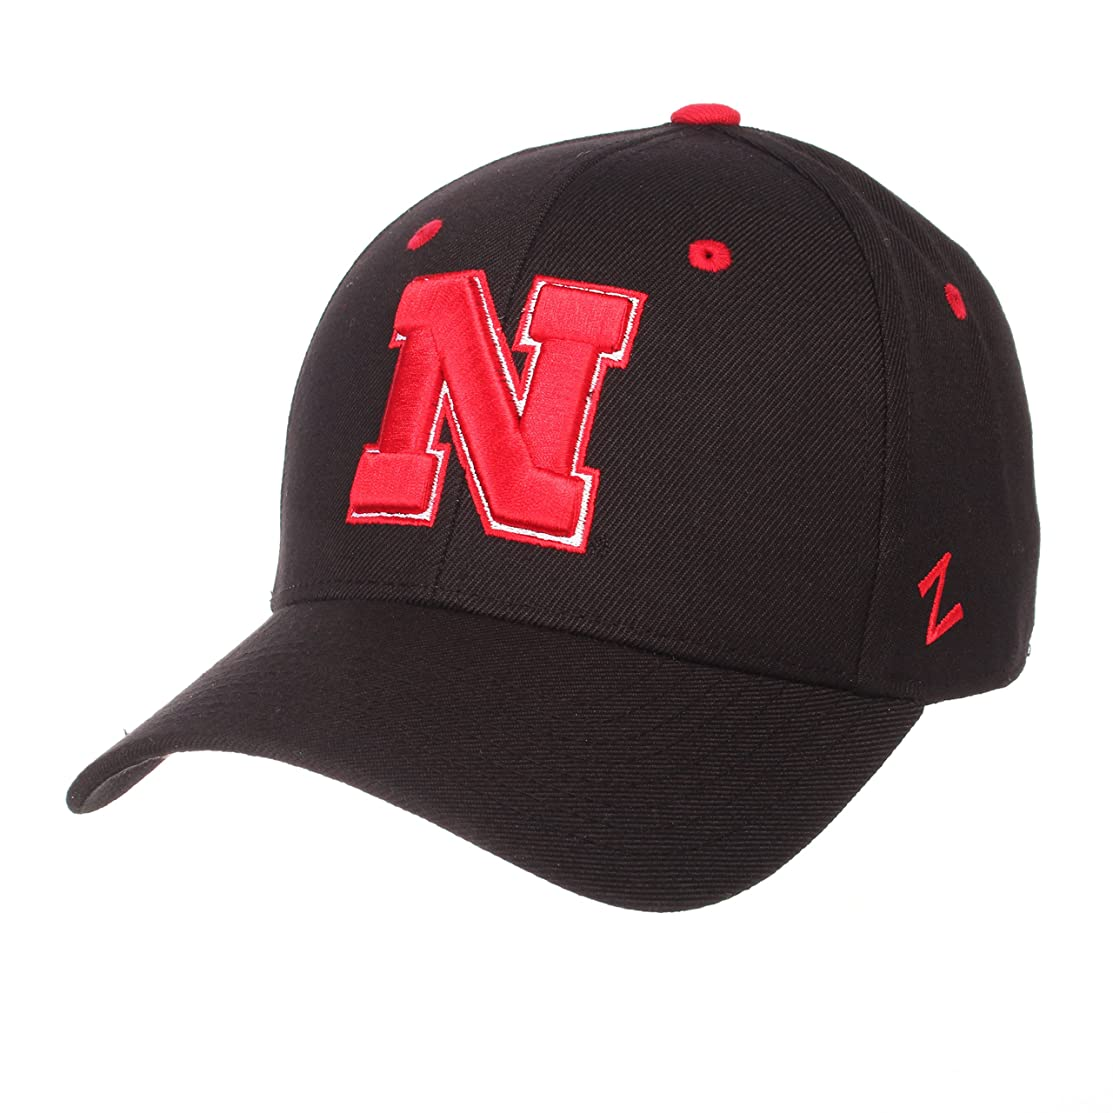 Zephyr Nebraska Cornhuskers Official NCAA DH Size 7 1/8 Fitted Hat Cap by 629307